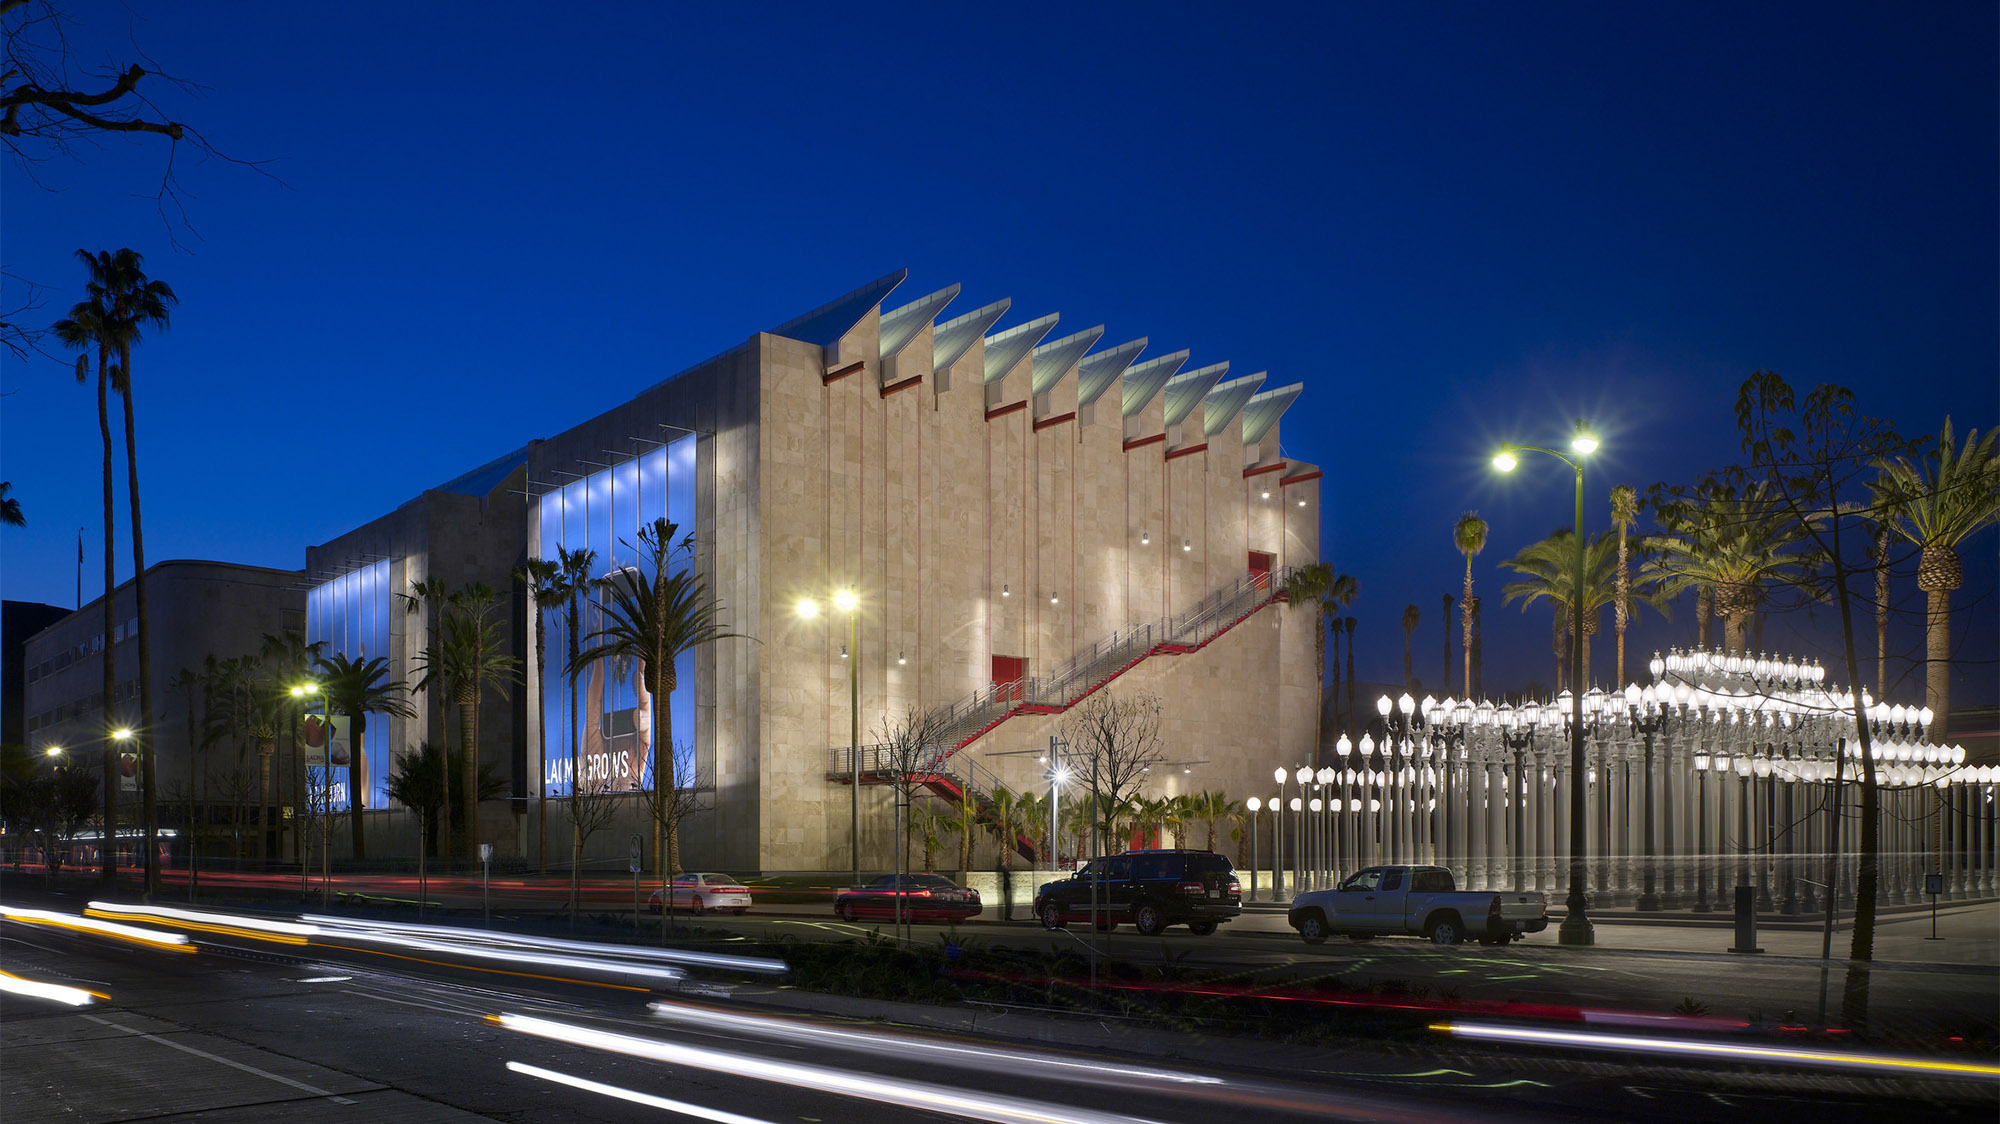 Los Angeles County Museum of Art LACMA